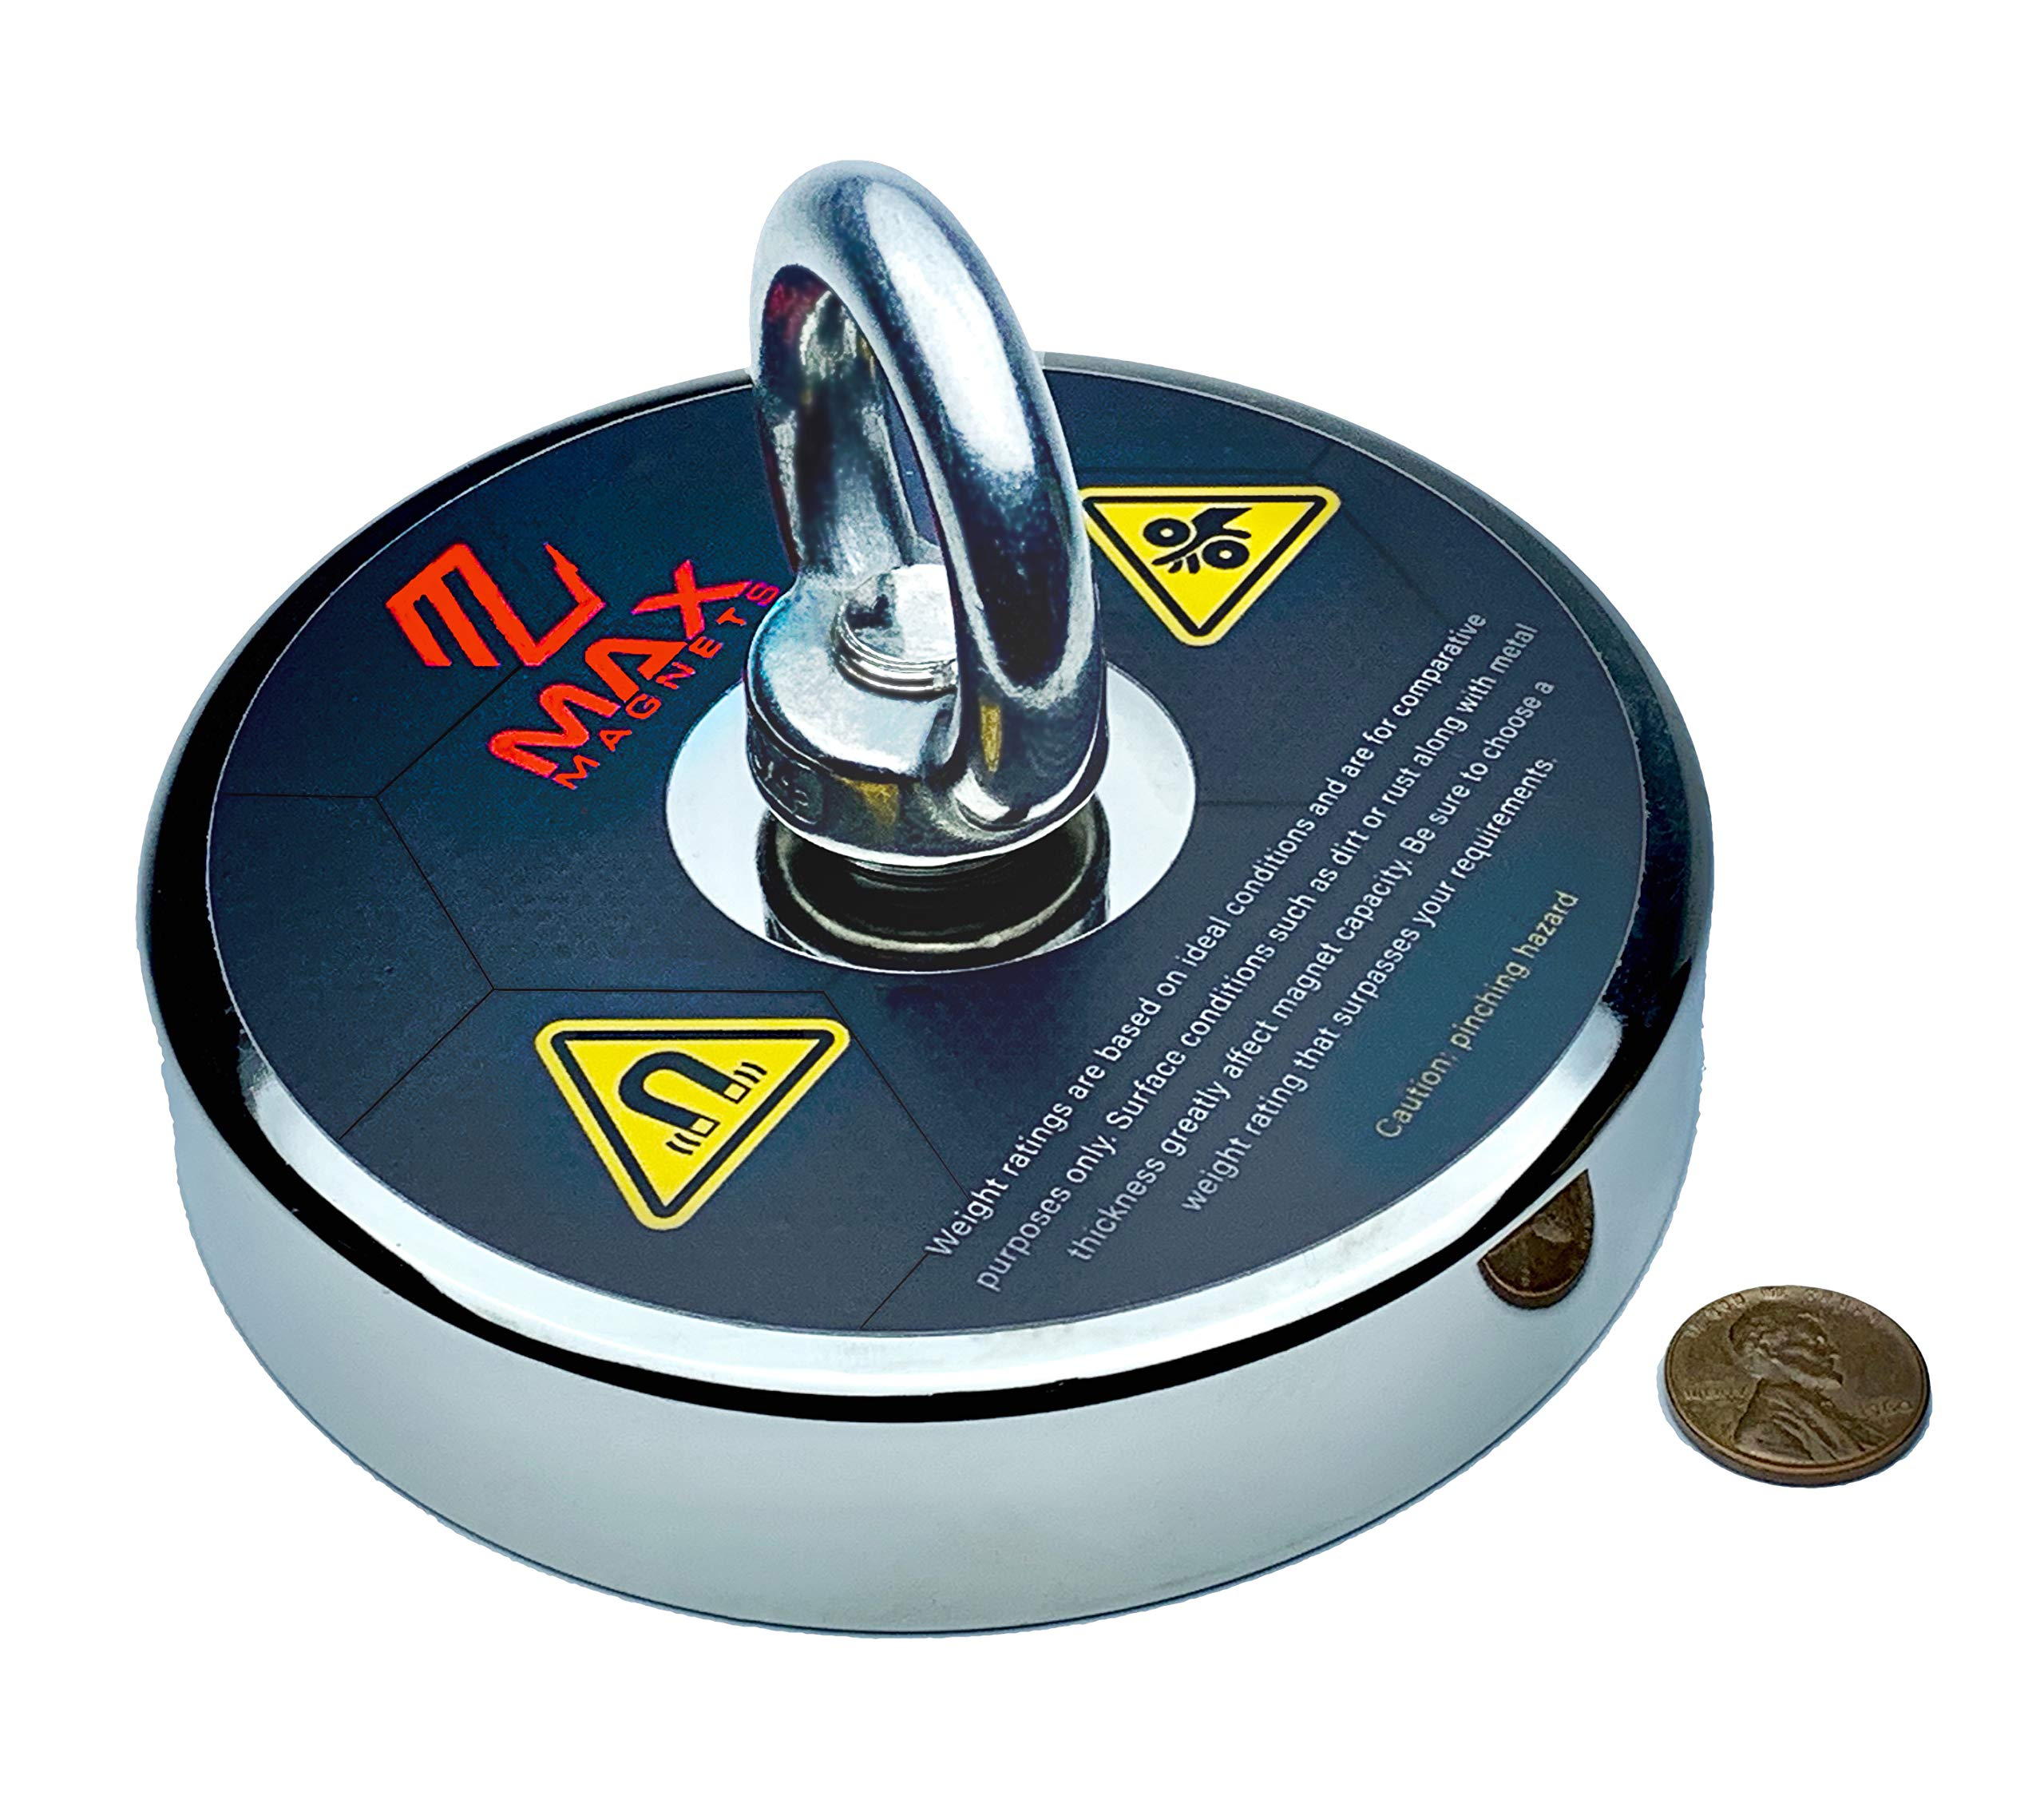 1,300+ LBS Pulling Force MaxMagnets Extreme Neodymium Fishing Magnet with Eyebolt, 4.72 Inch Diameter. by MaxMagnets